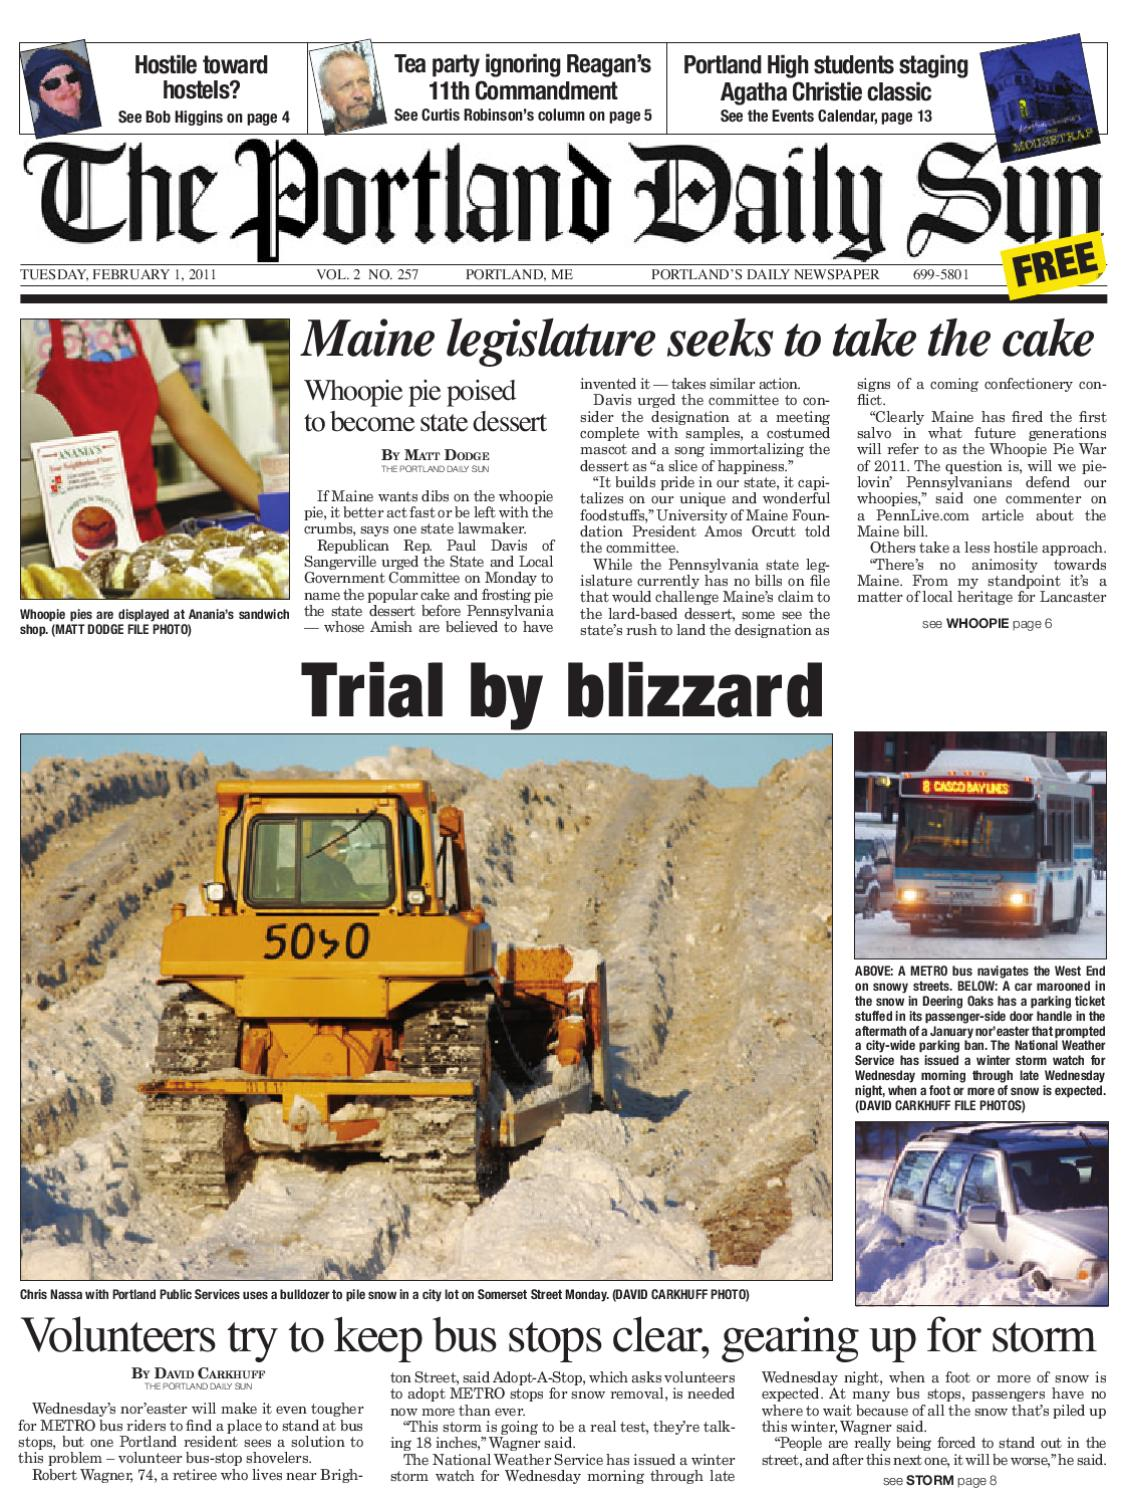 The Portland Daily Sun, Tuesday, February 1, 2011 by Daily Sun - issuu